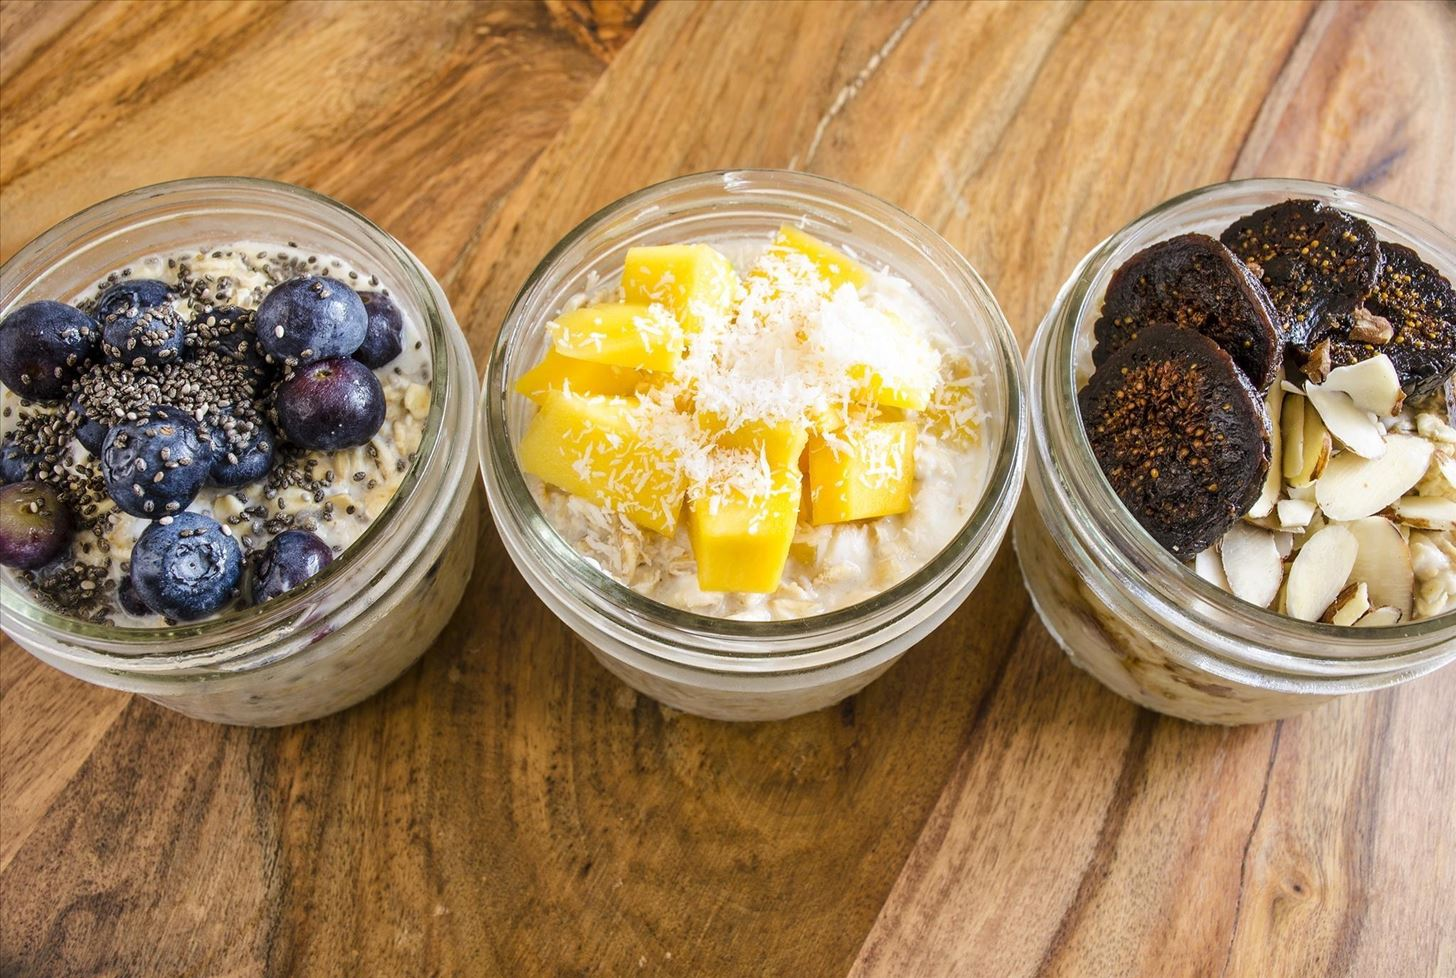 Prep Oats Overnight for Easy Grab-&-Go Breakfasts All Week